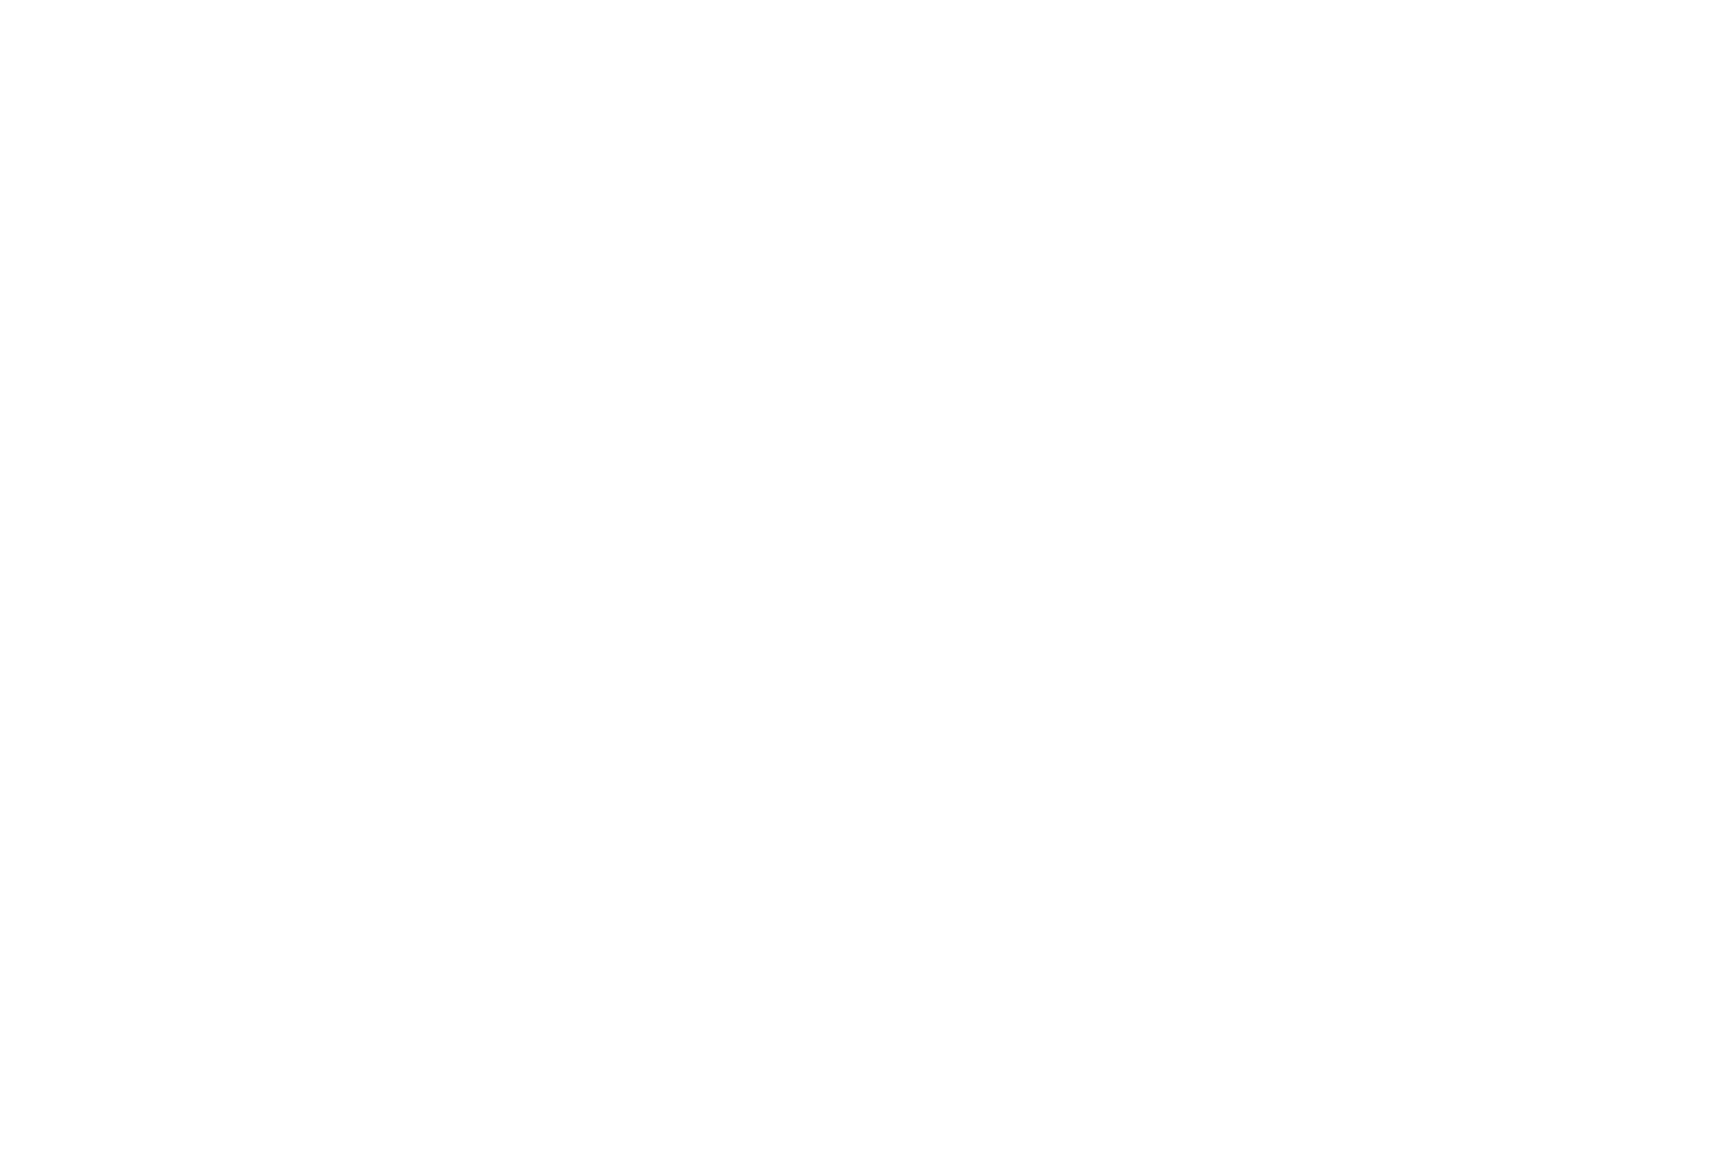 BEST ACTRESS - TMFF - The Monthly Film Festival - 2016